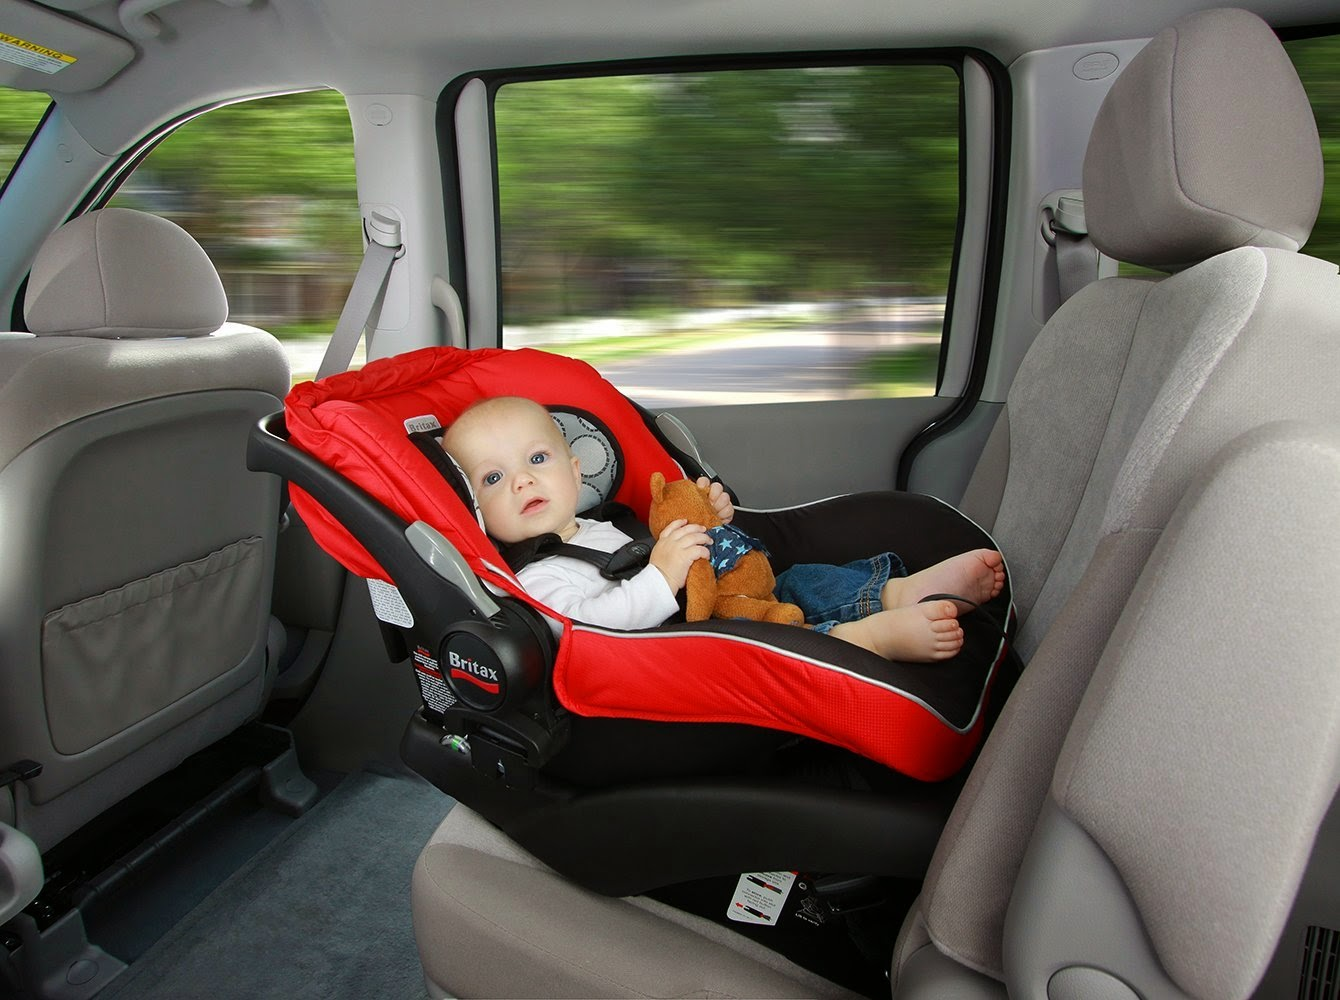 How to Clean a Baby Car Seat Properly without Damaging